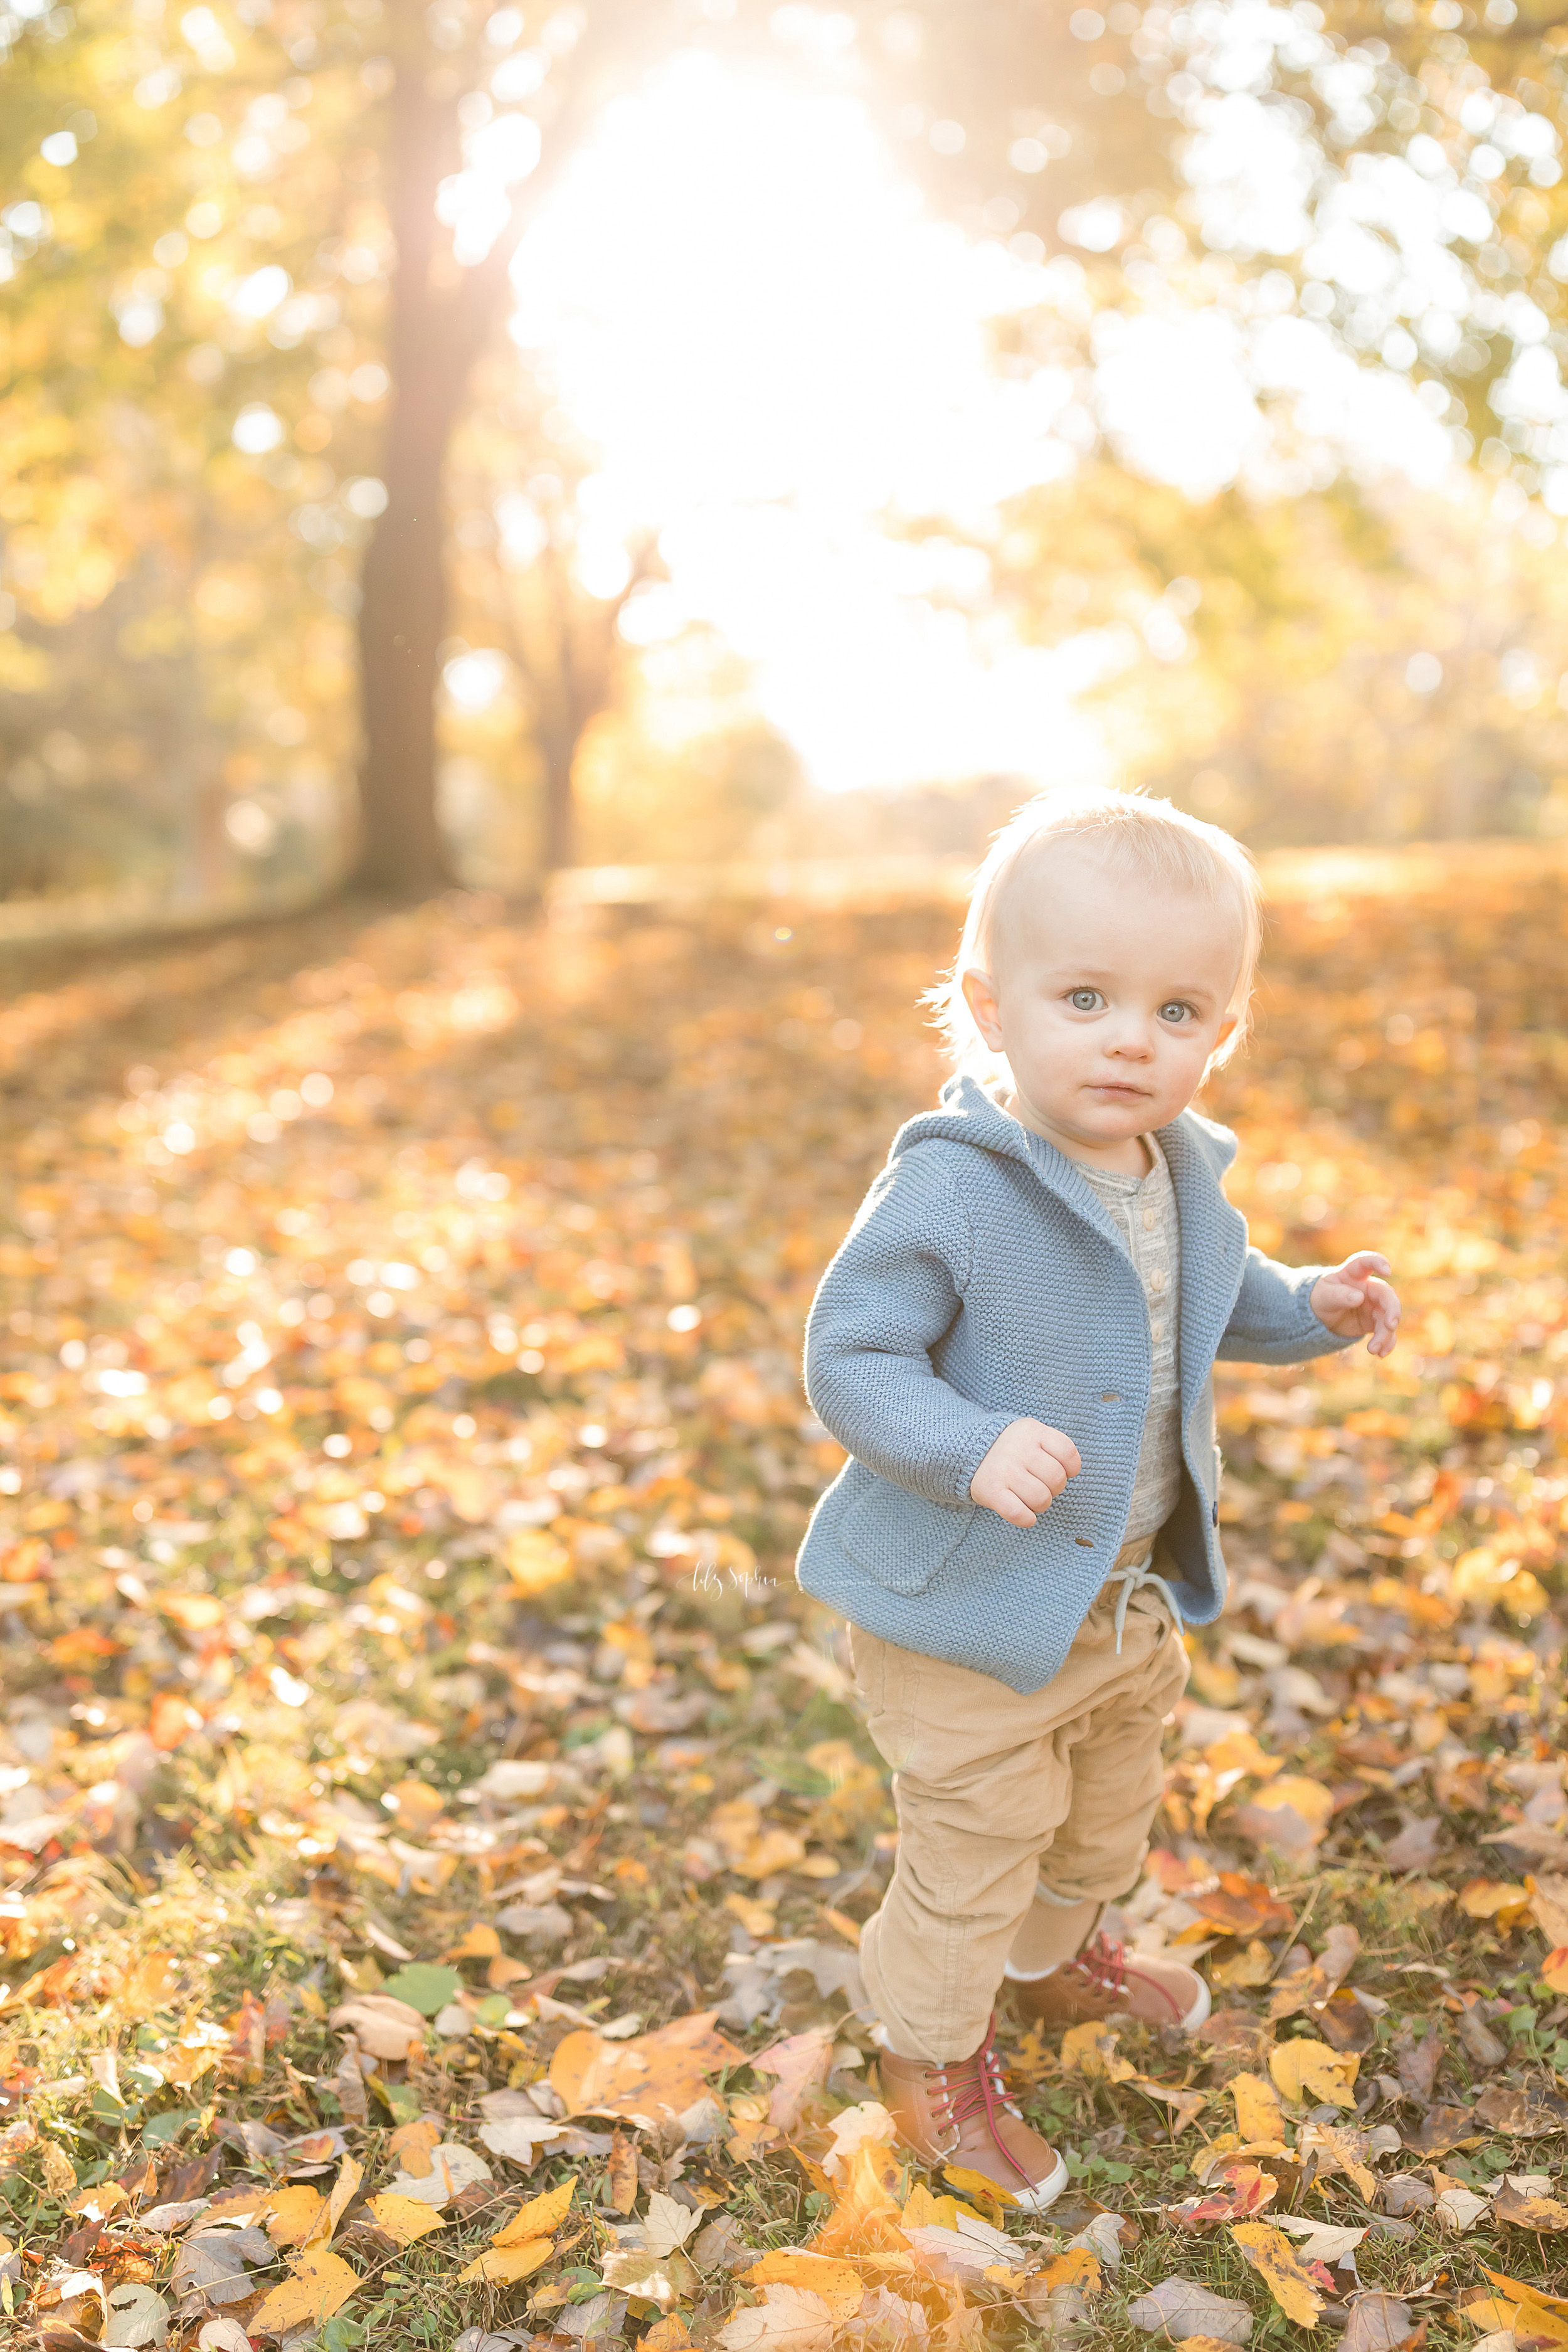 Milestone photo of a blonde haired, blue eyed baby boy during the fall at sunset walking in the leaves in an Atlanta park.